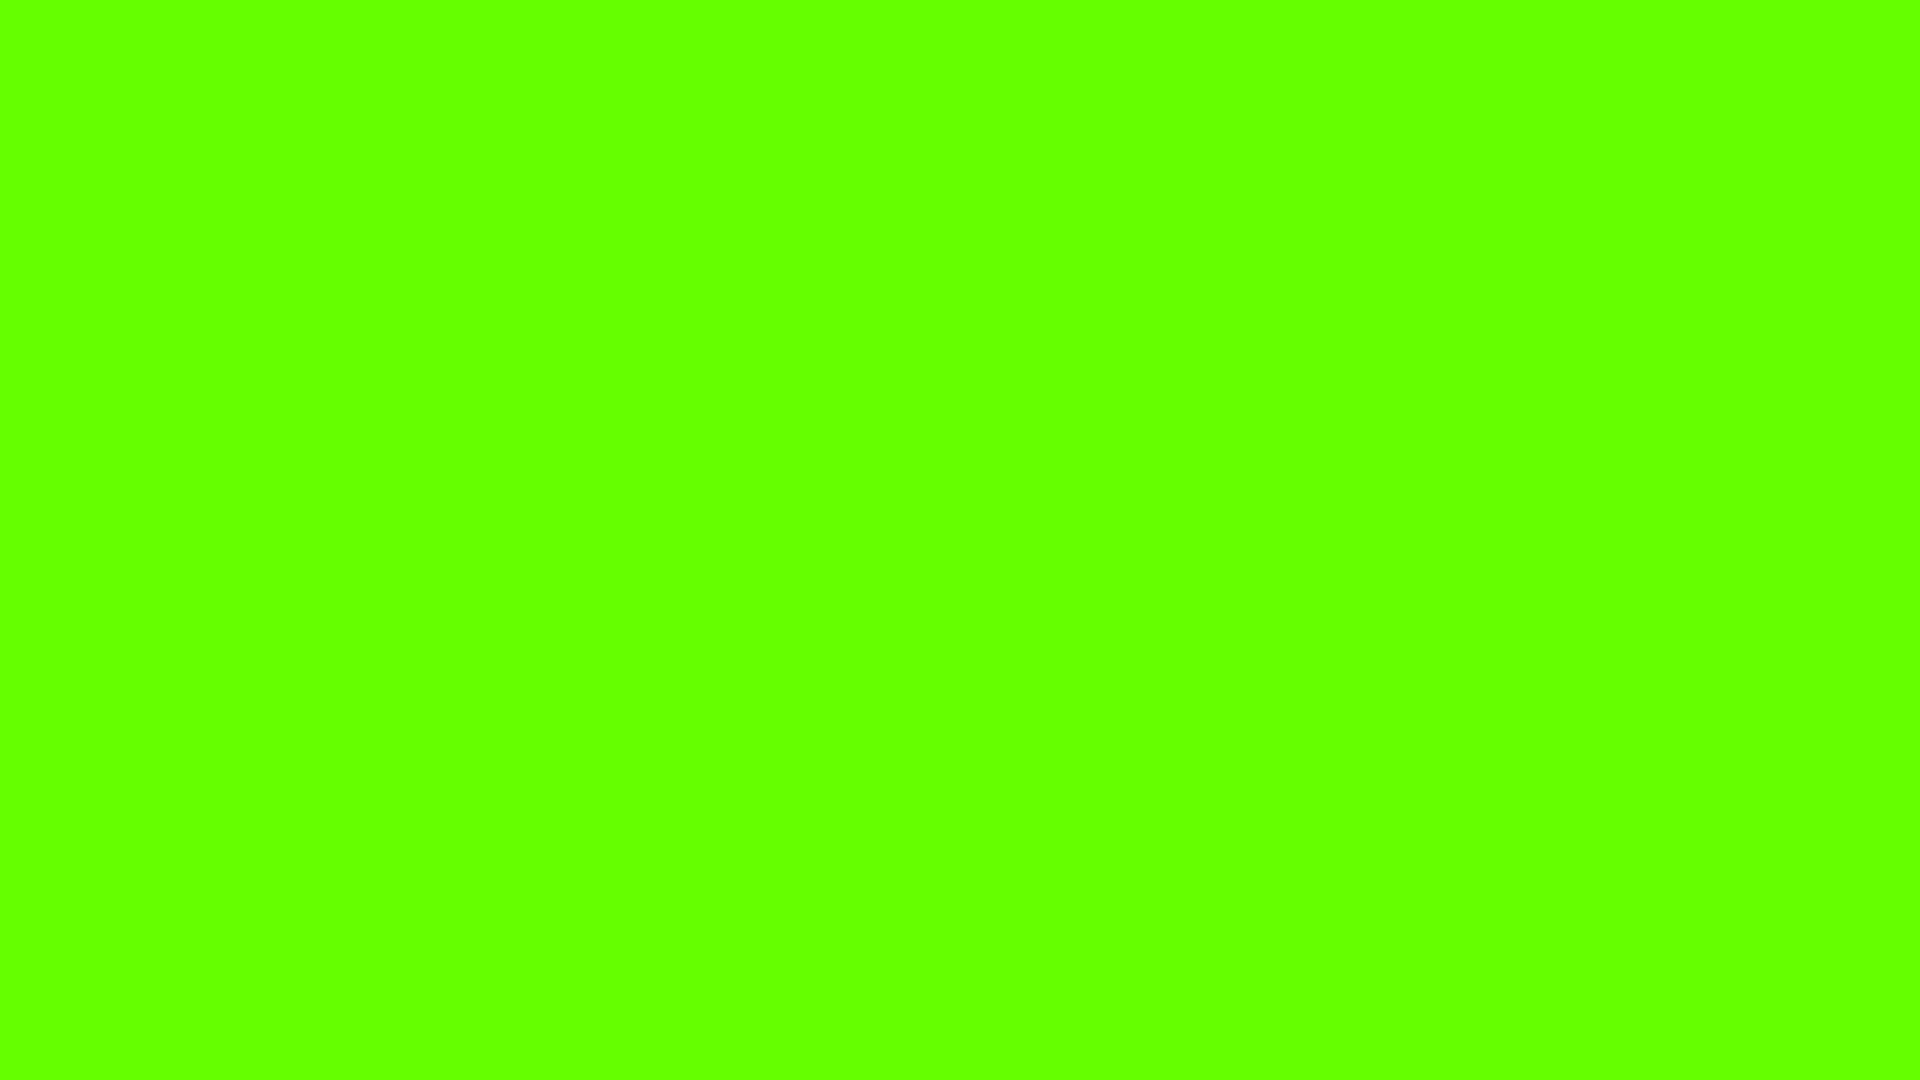 solid bright green background - photo #1